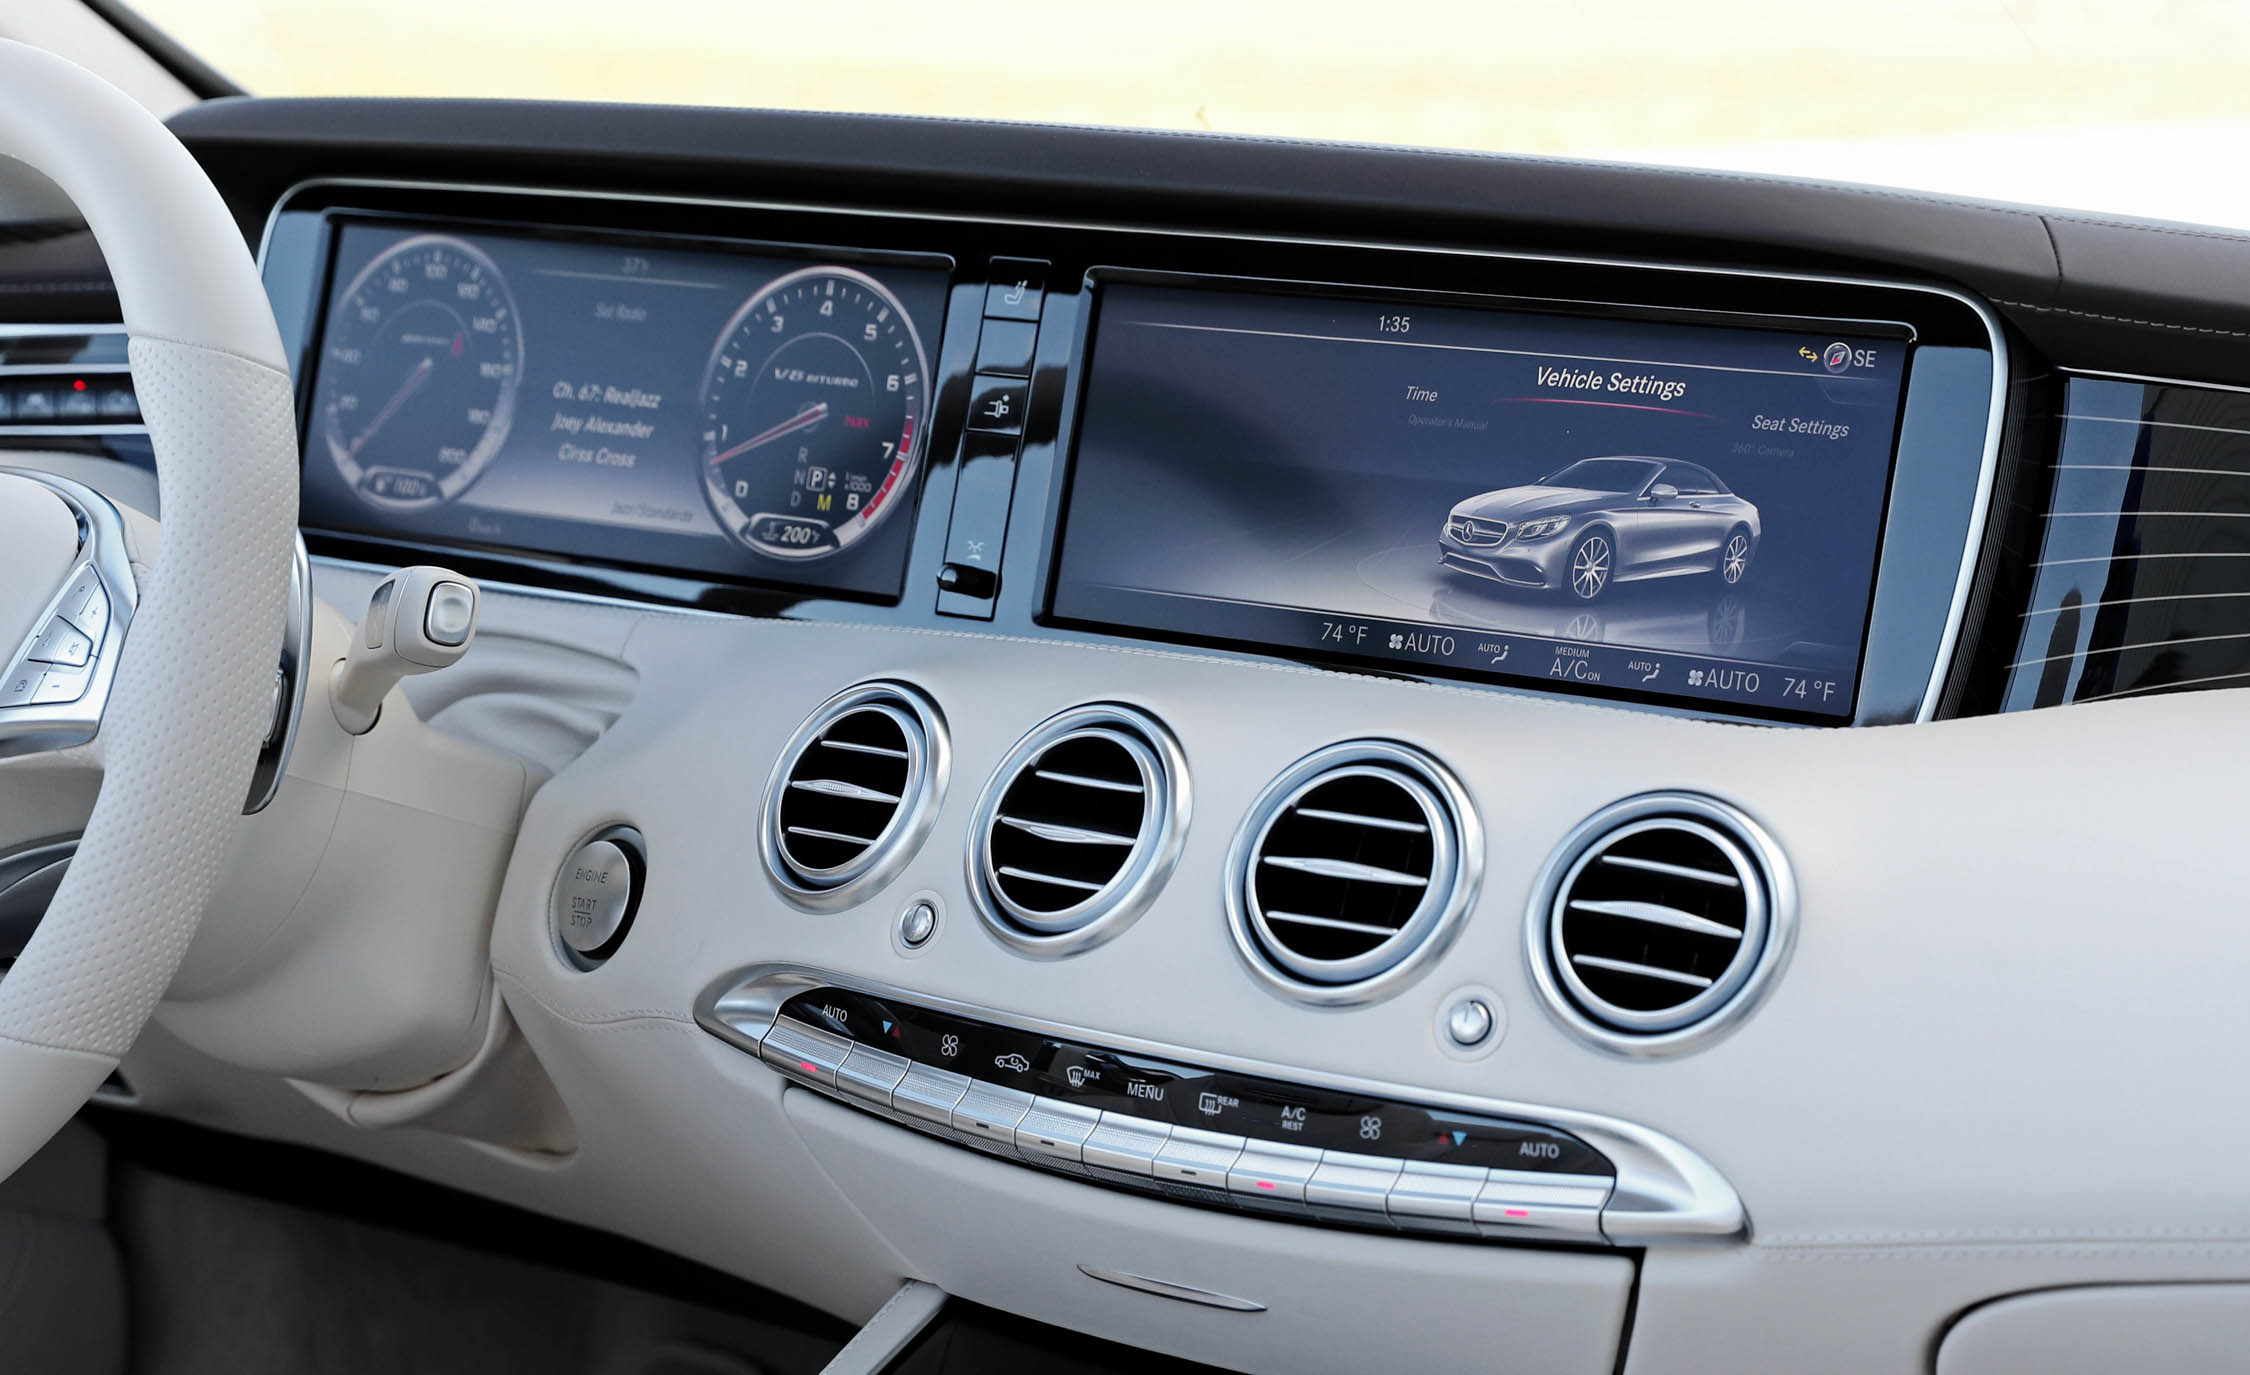 2017 Mercedes Amg S63 Cabriolet Interior View Headunit And Multimedia (Photo 24 of 38)